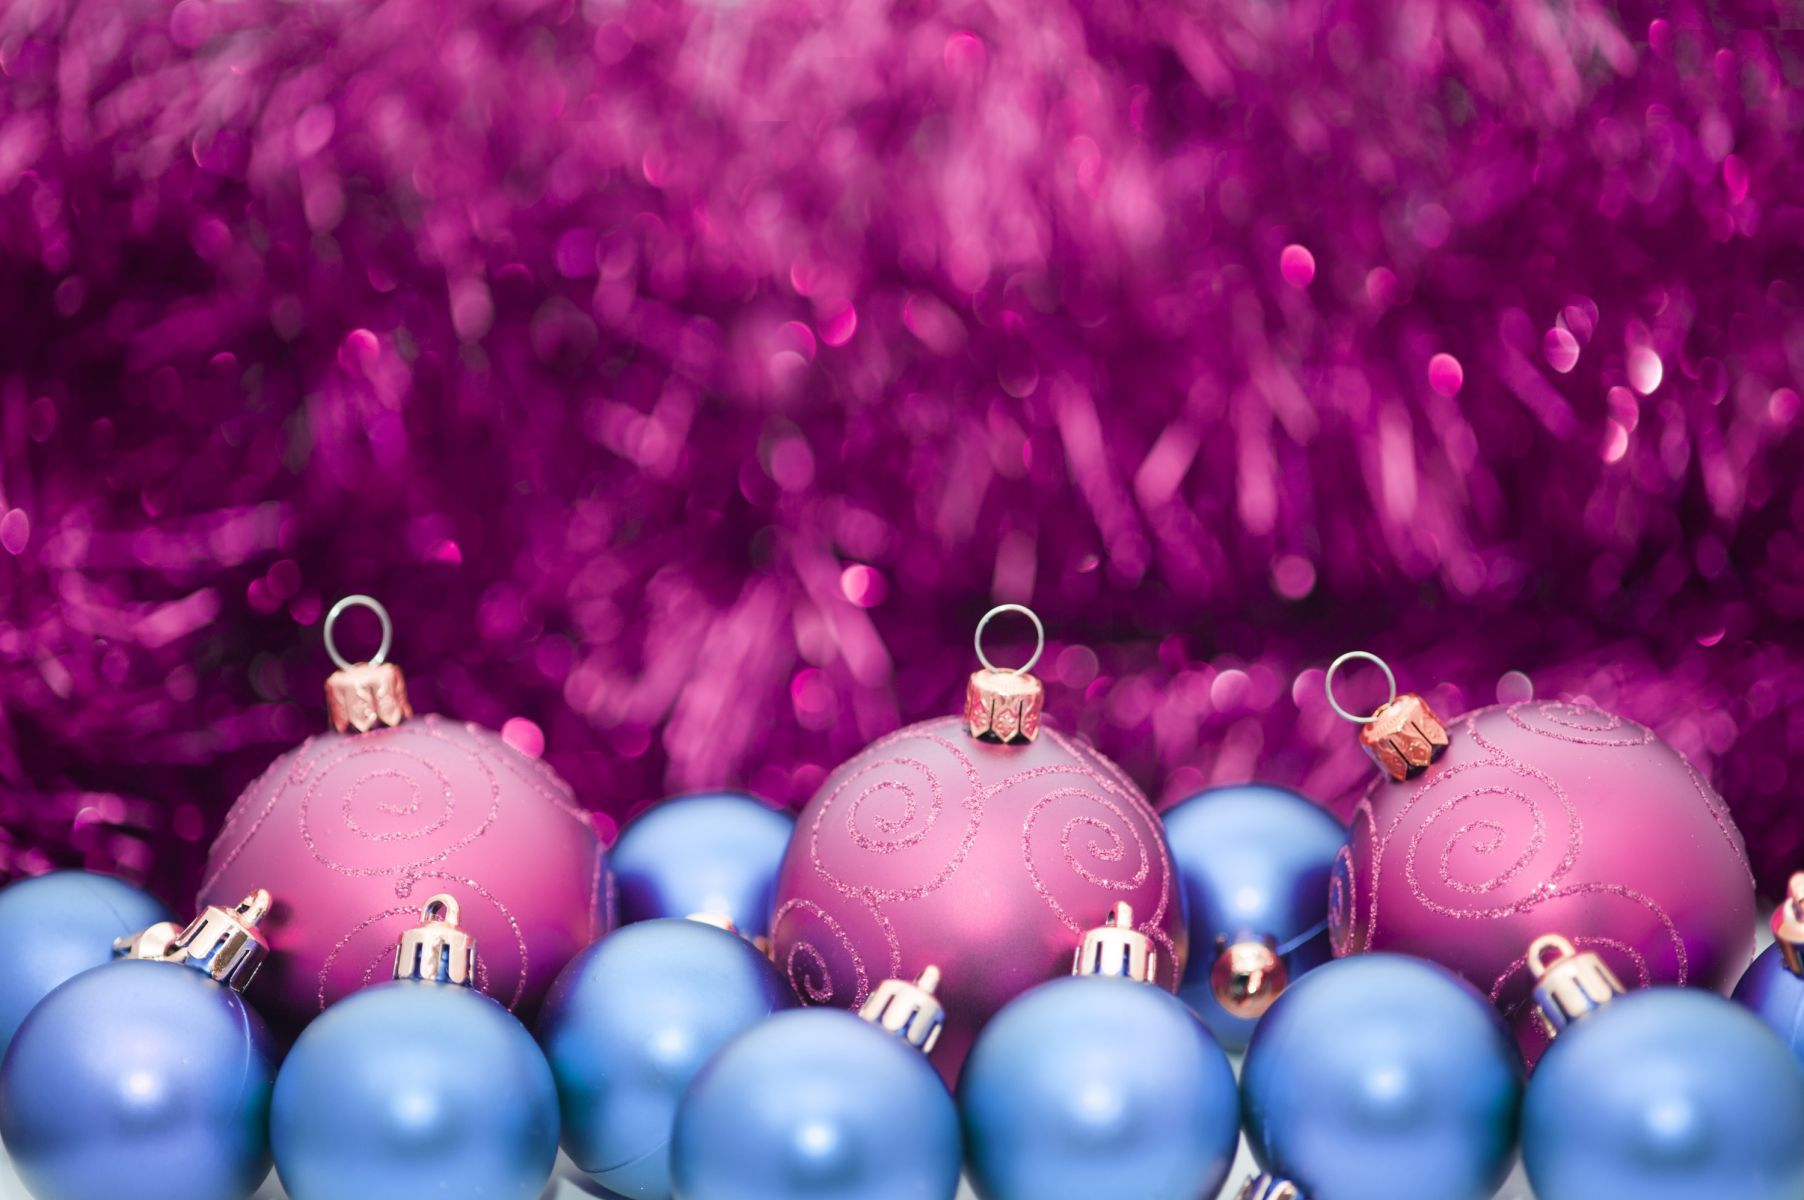 9 Pink New Year With Christmas Wallpaper Blue ChristmasChristmas ImagesChristmas BackgroundBackgrounds